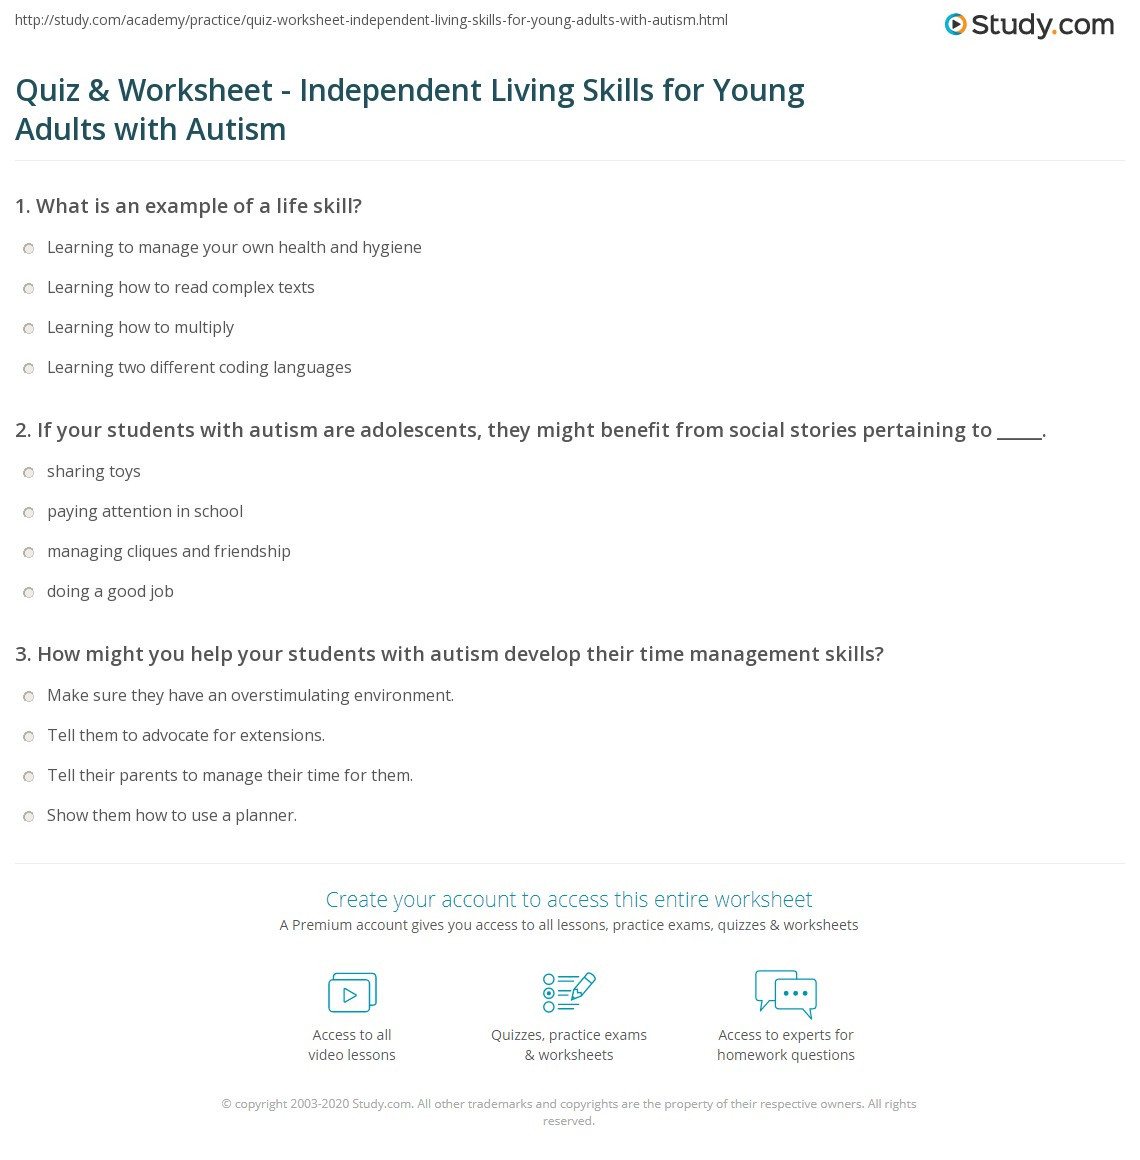 Independent Living Skills Worksheets Quiz Worksheet Independent Living Skills for Adults with